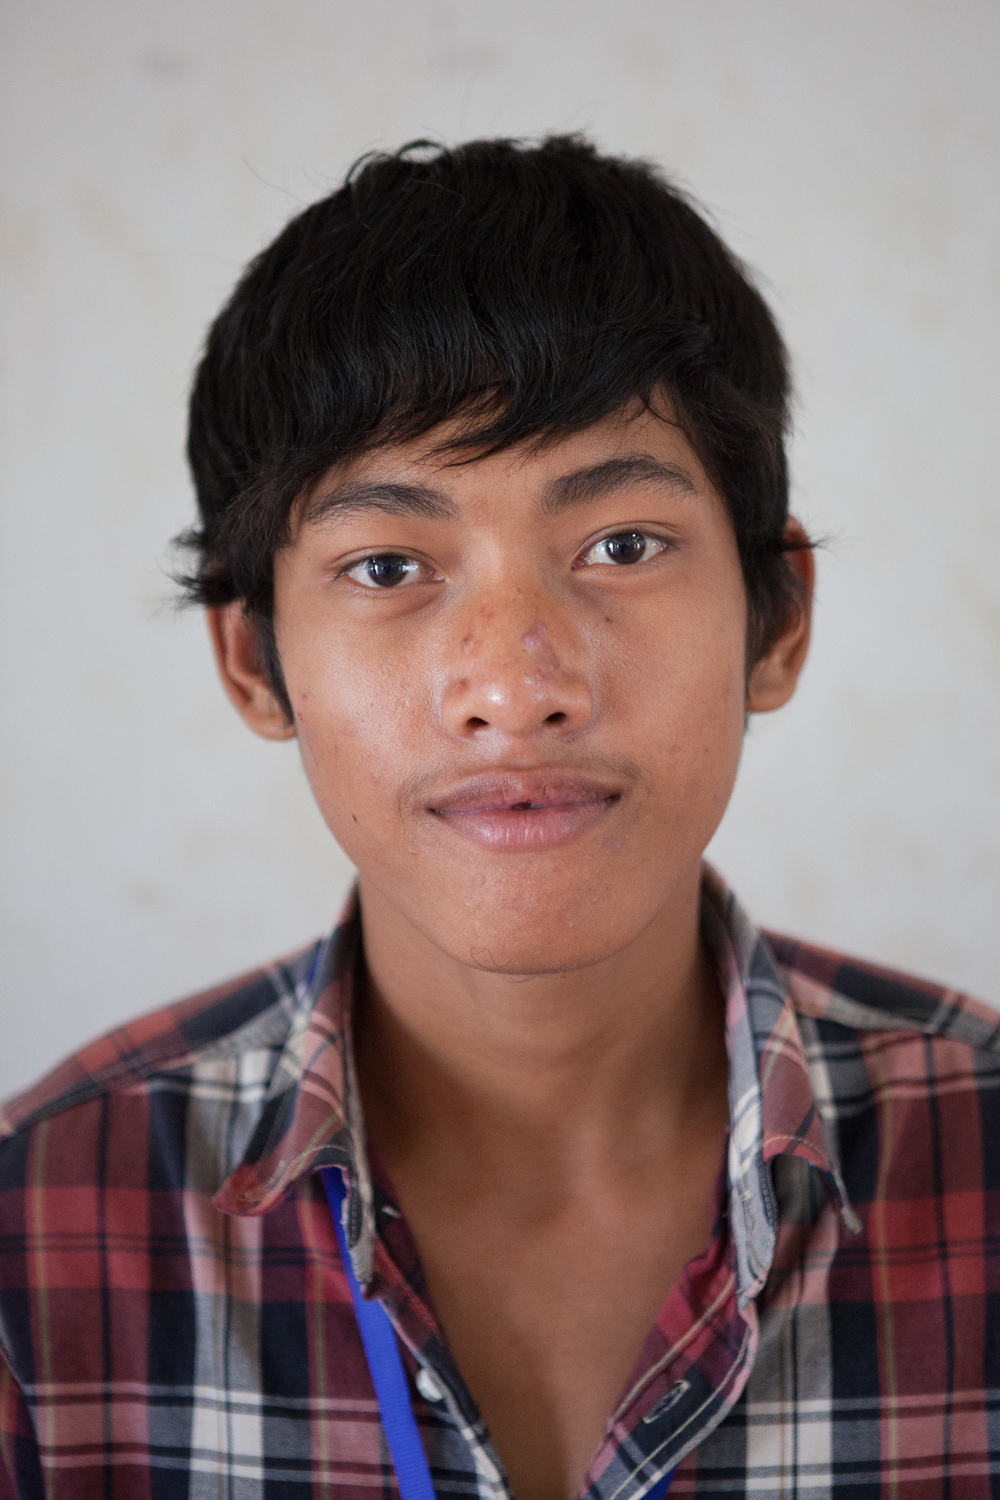 """My Alongsider showed love to me, and now I want to show my love to my own little brother."" (Narith, Age 17)"